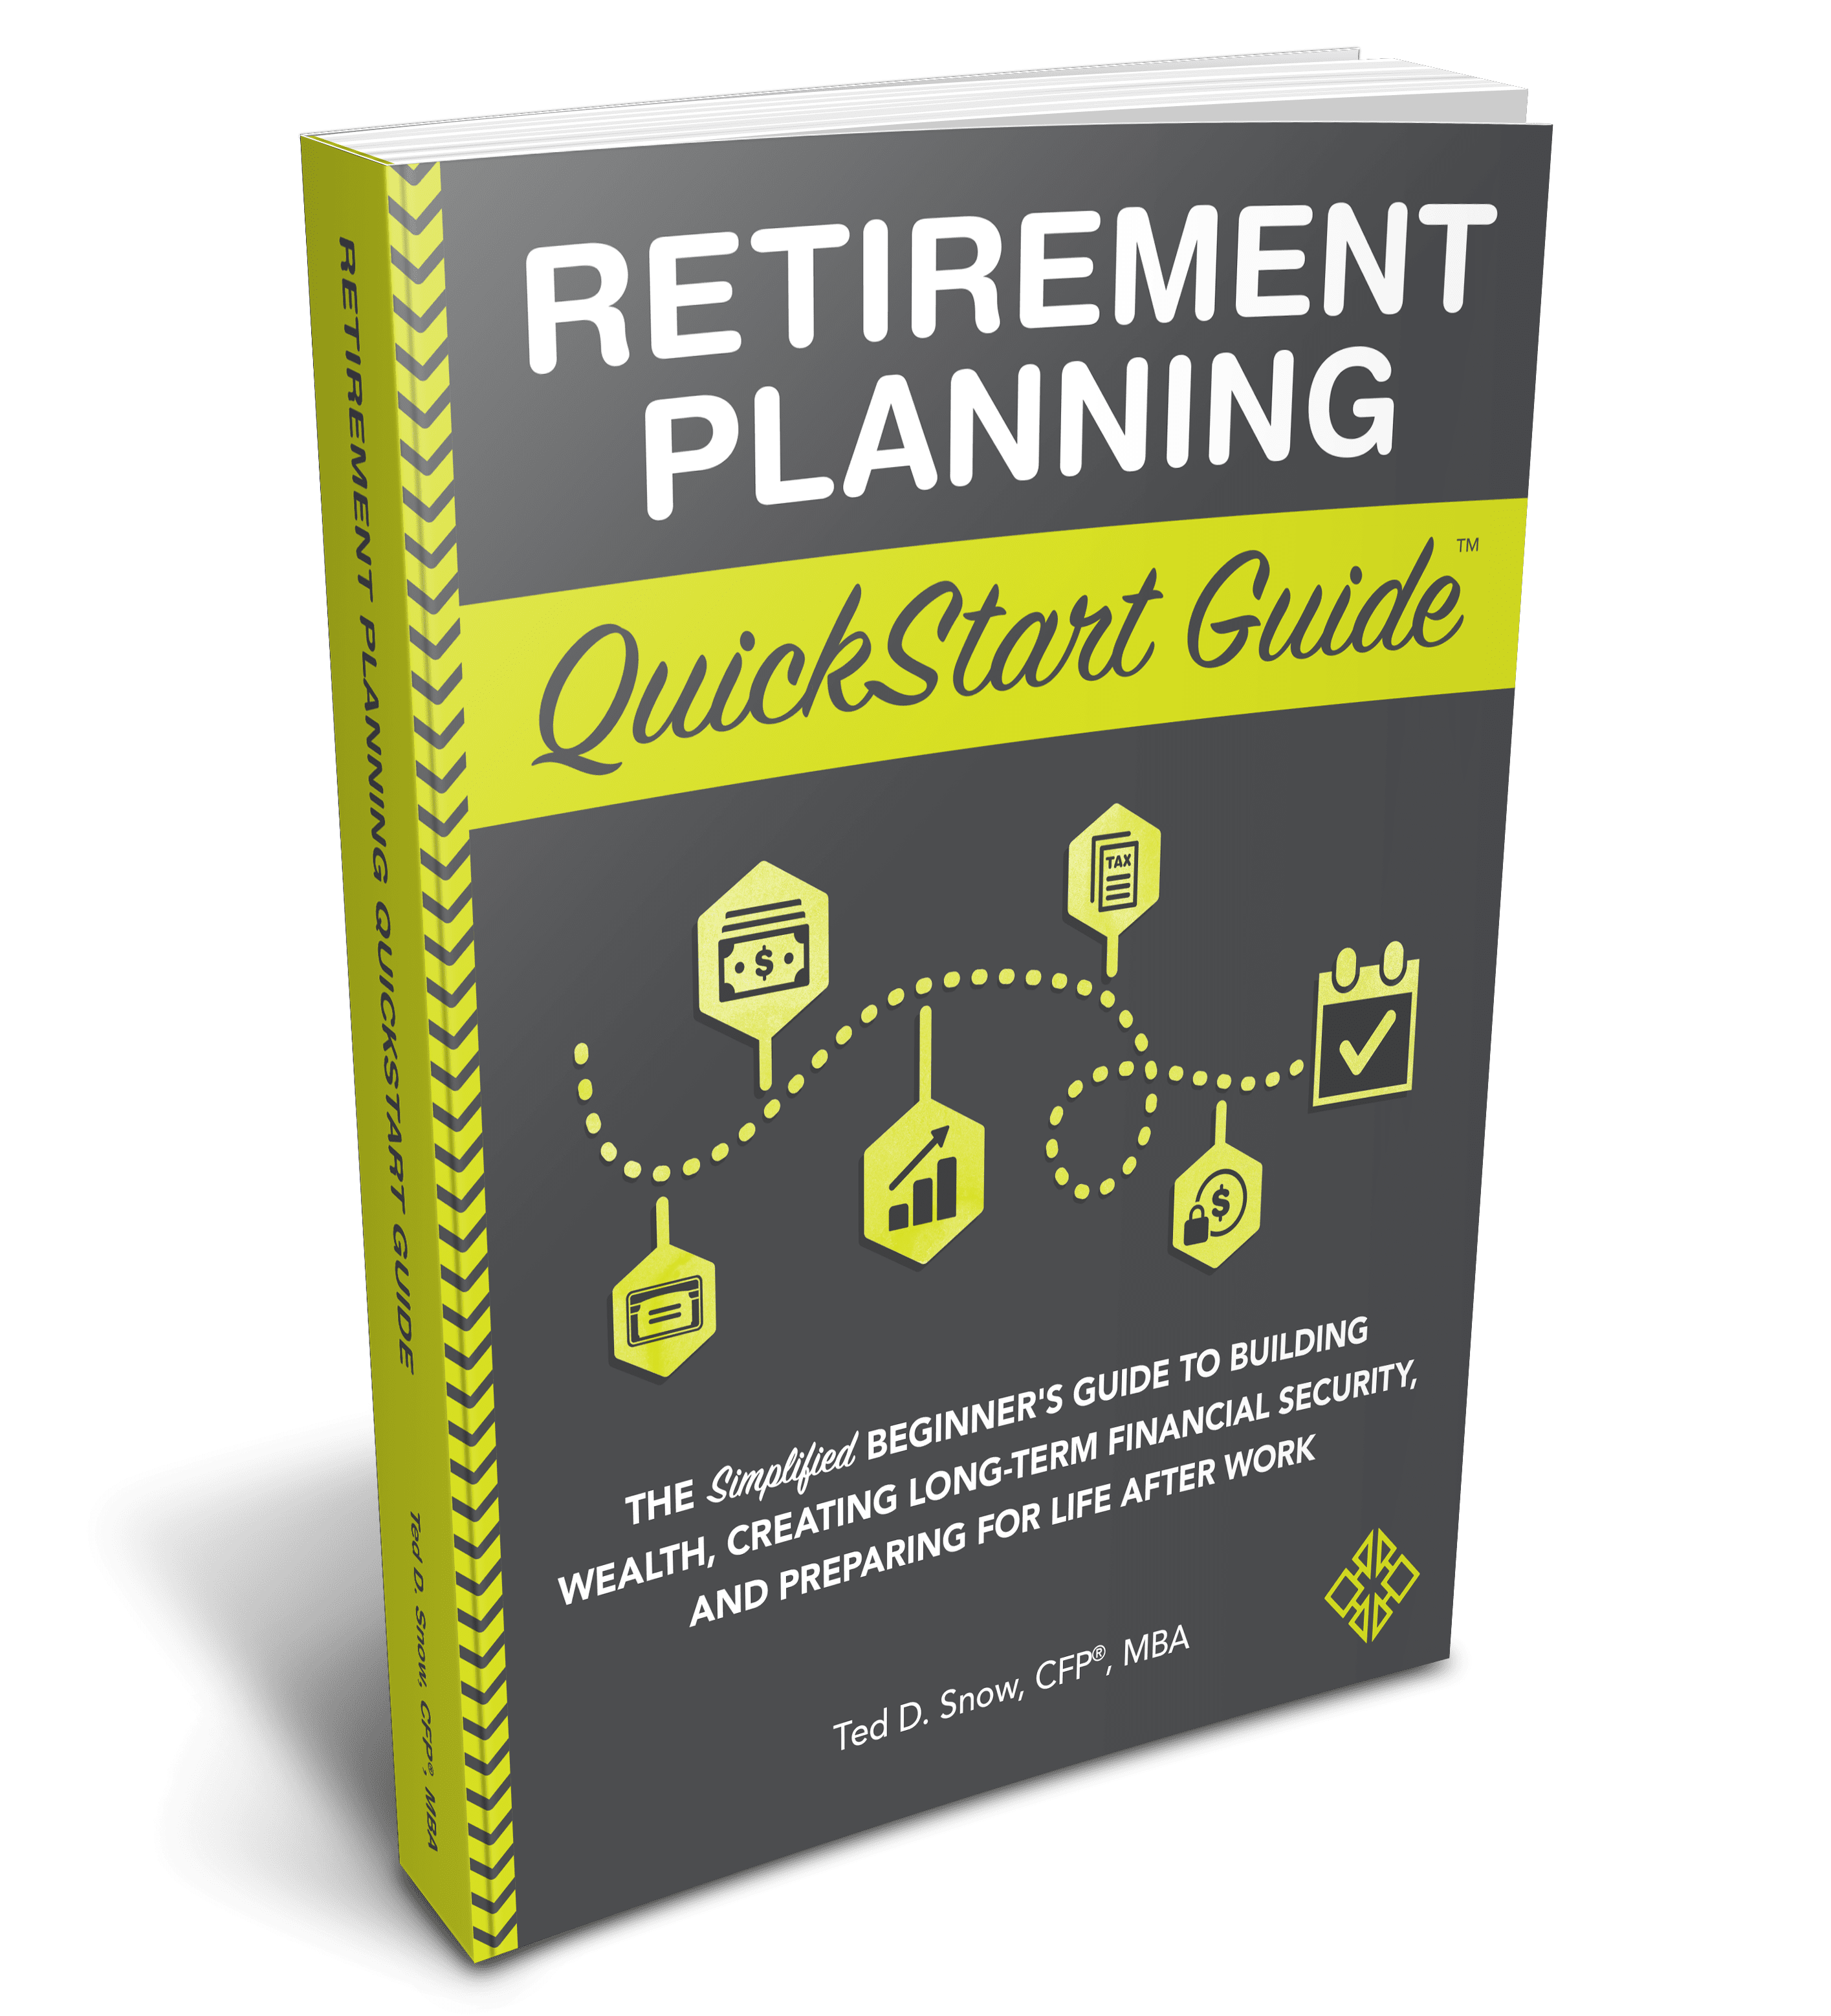 Retirement Planning QuickStart Guide by Ted D. Snow CFP, MBA